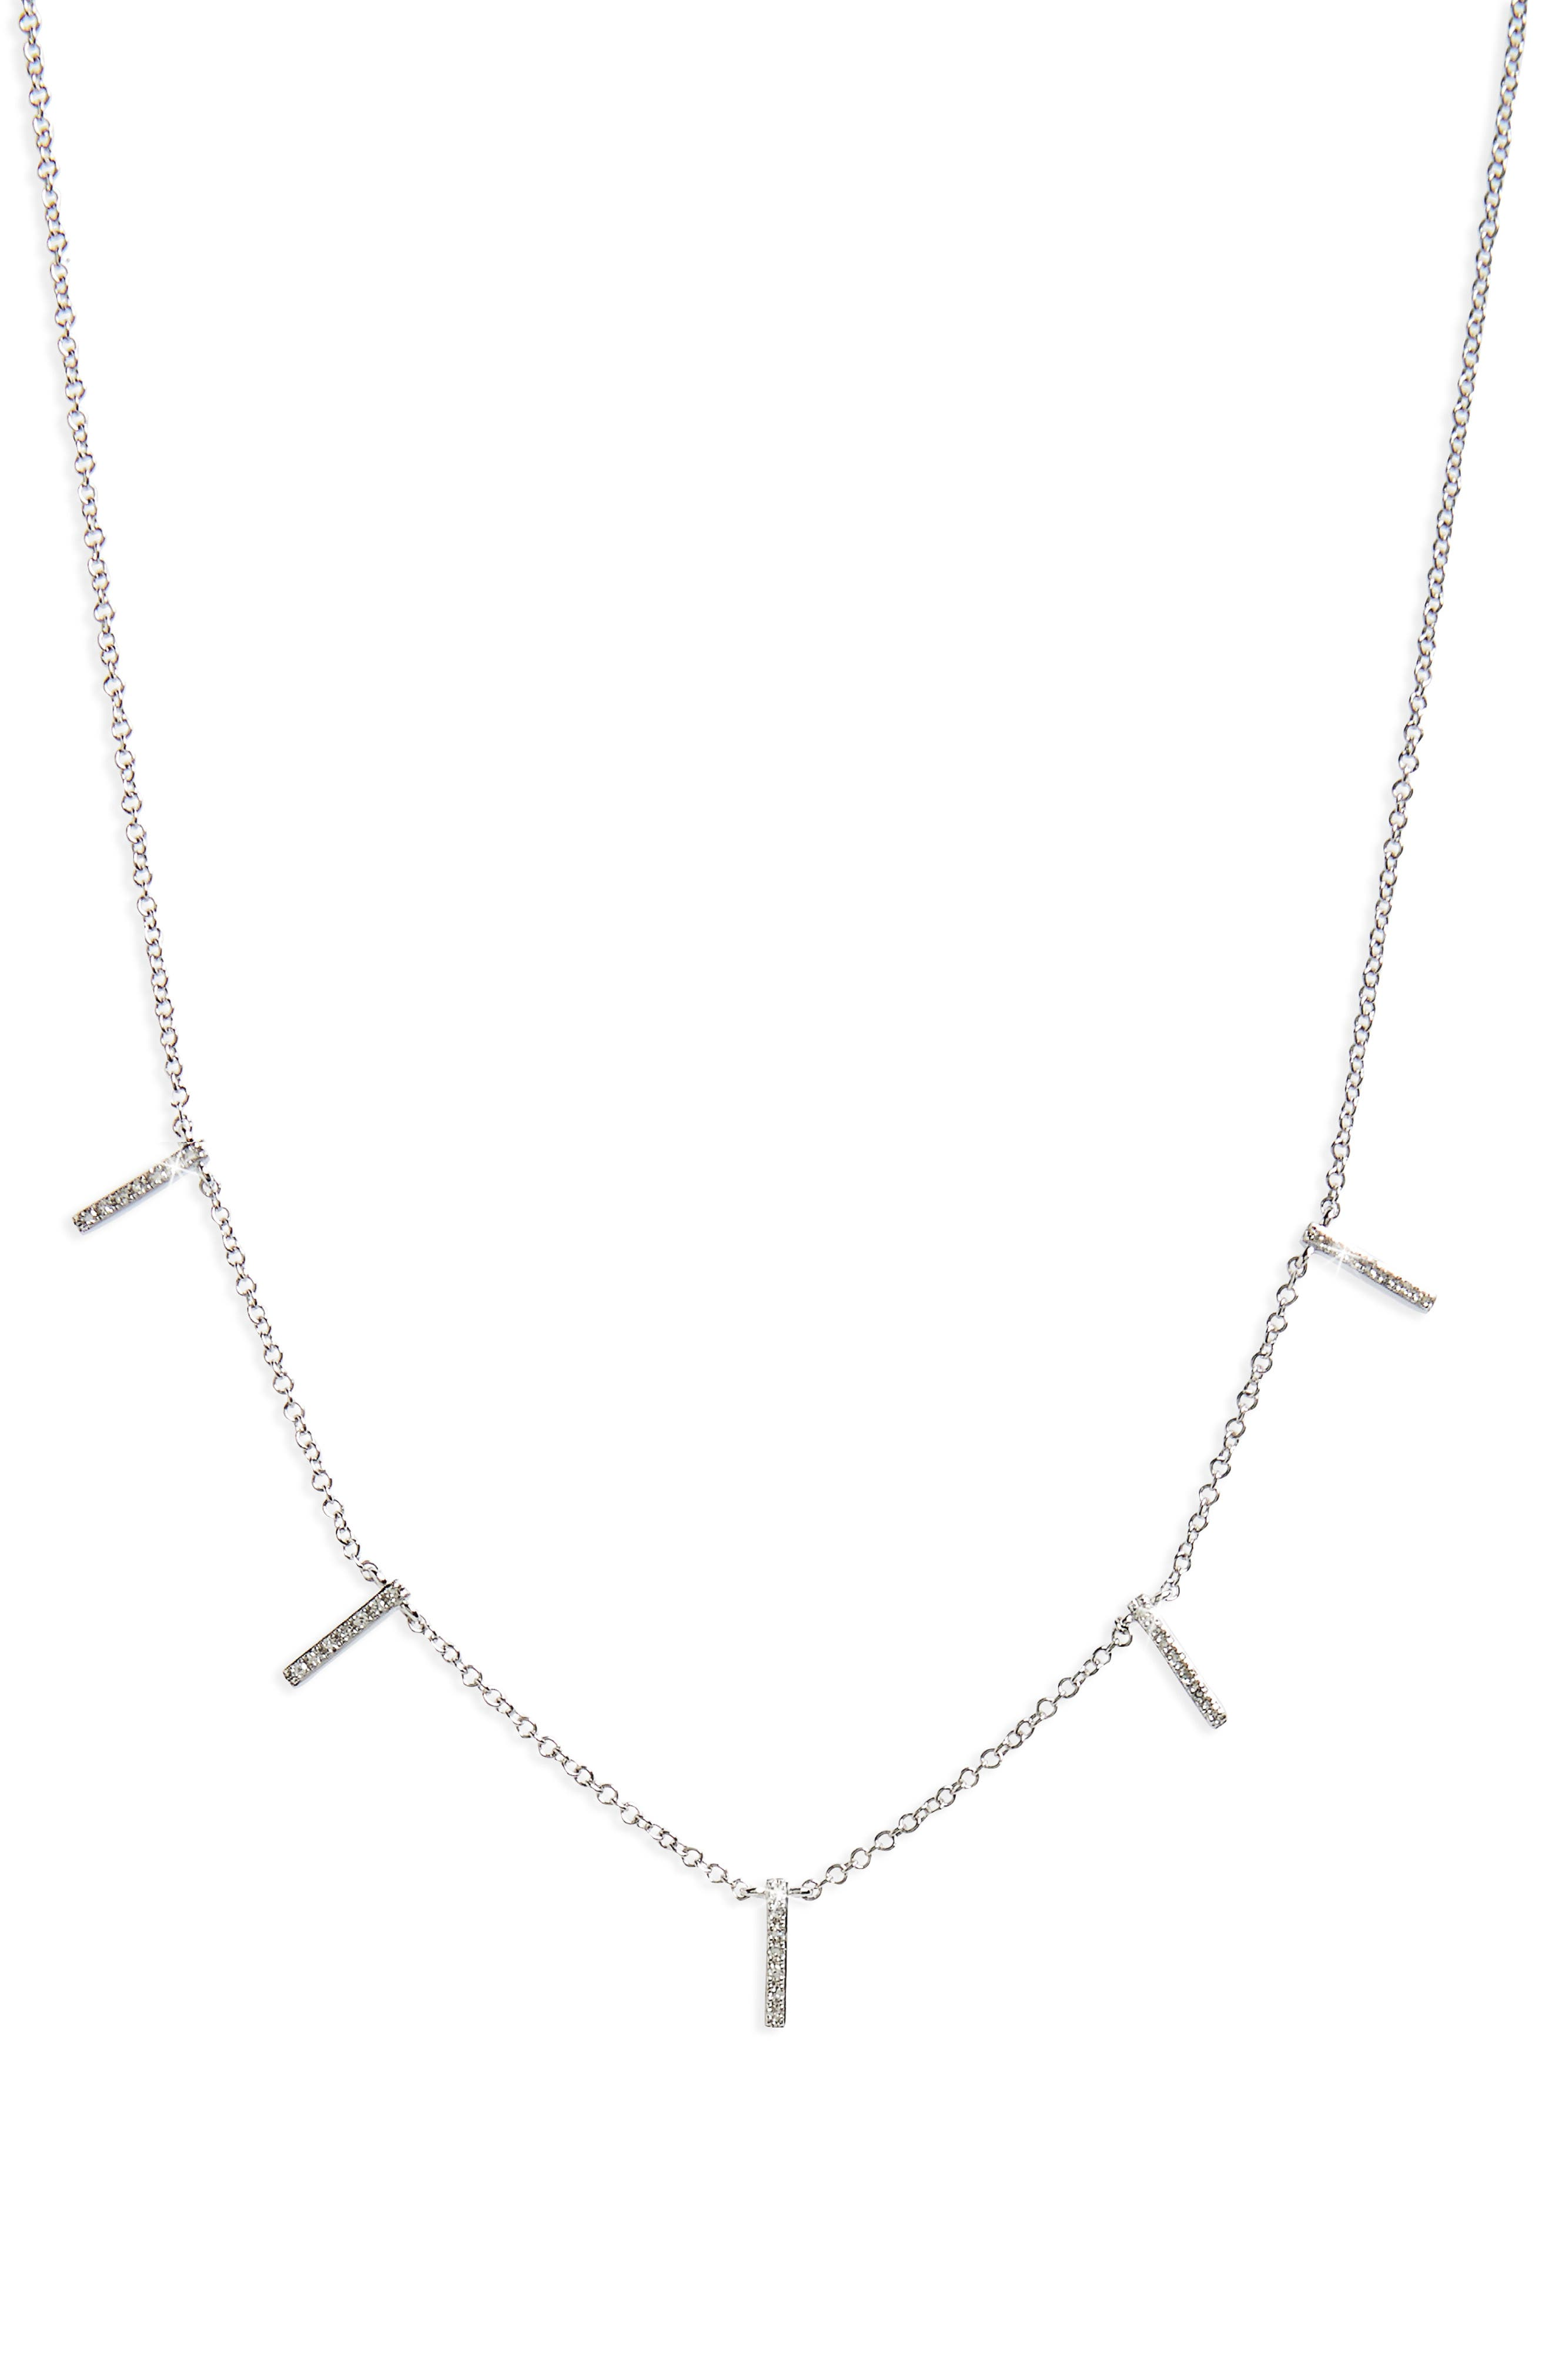 Diamond Collar Necklace,                             Main thumbnail 1, color,                             WHITE GOLD